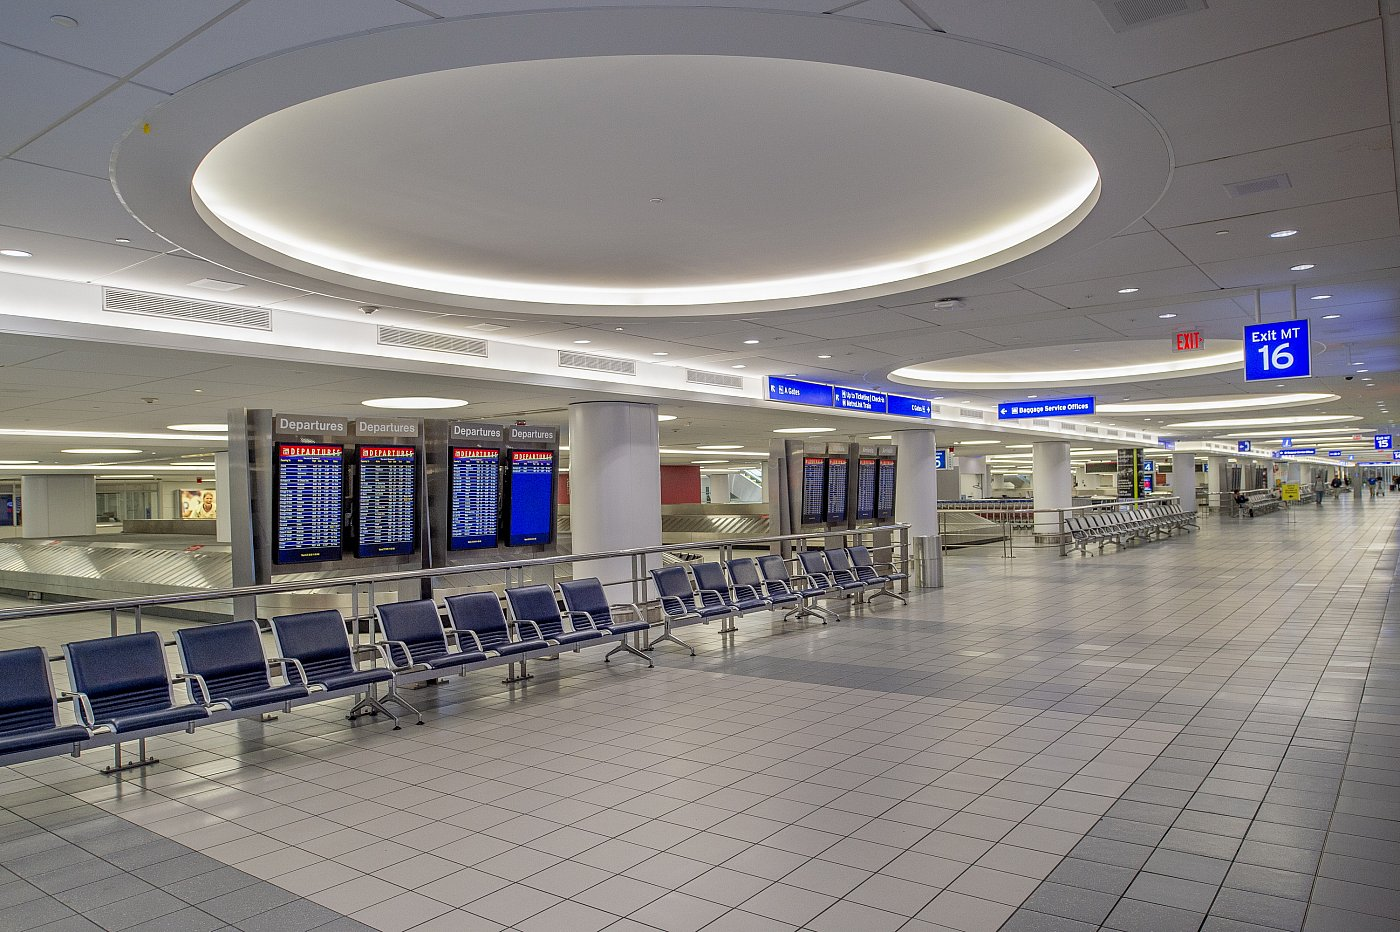 001 STL Airport_KAI March 2019.jpg